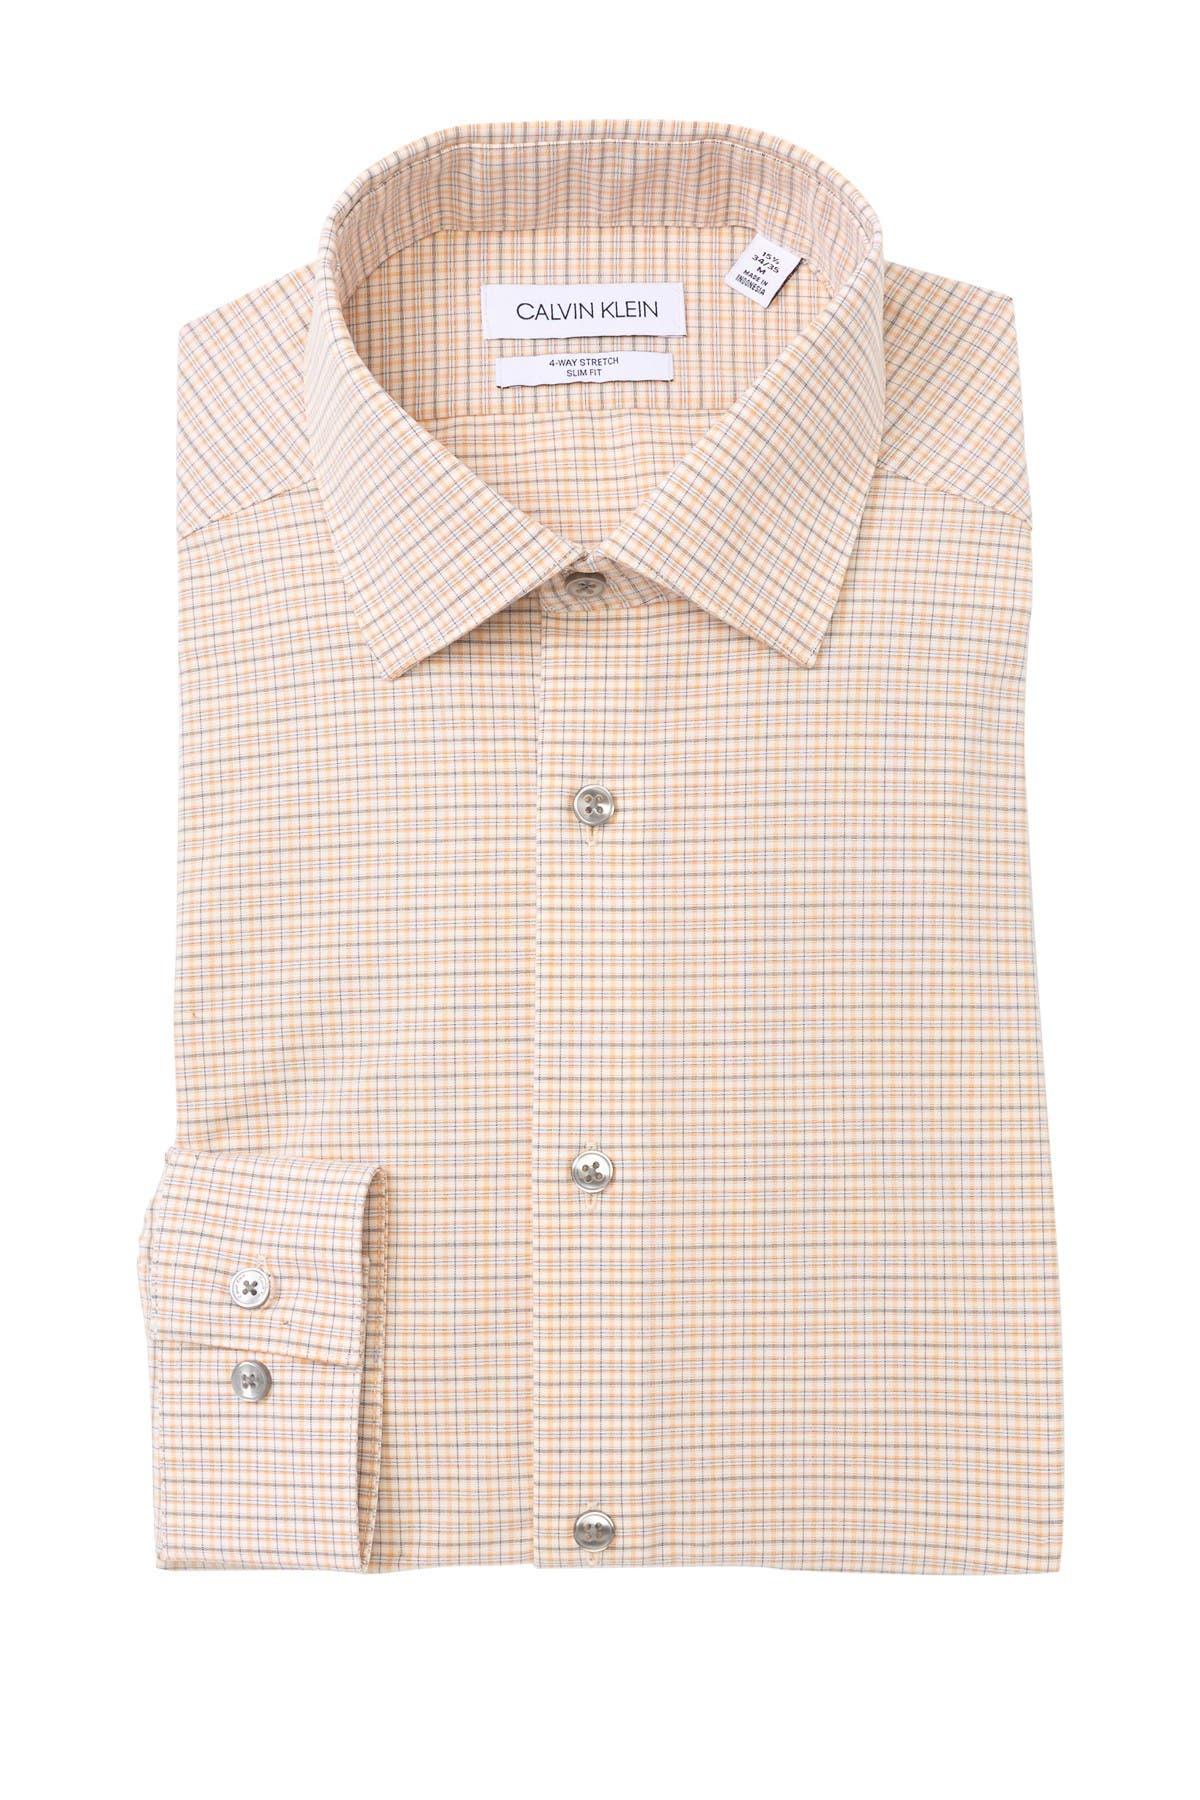 Image of Calvin Klein Stretch Slim Fit Dress Shirt